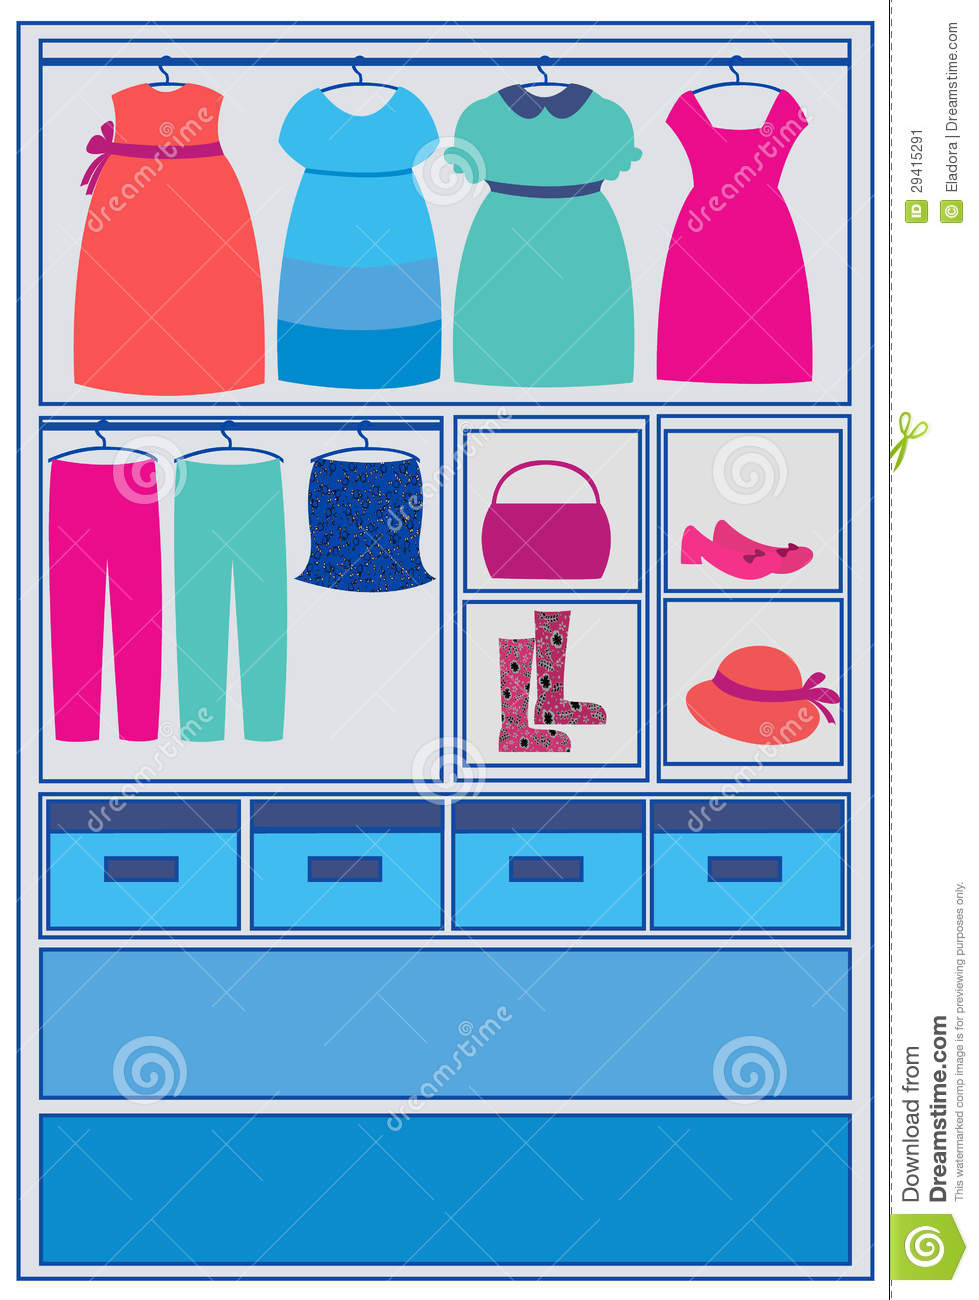 Clothes Closet Clipart Image Search Results